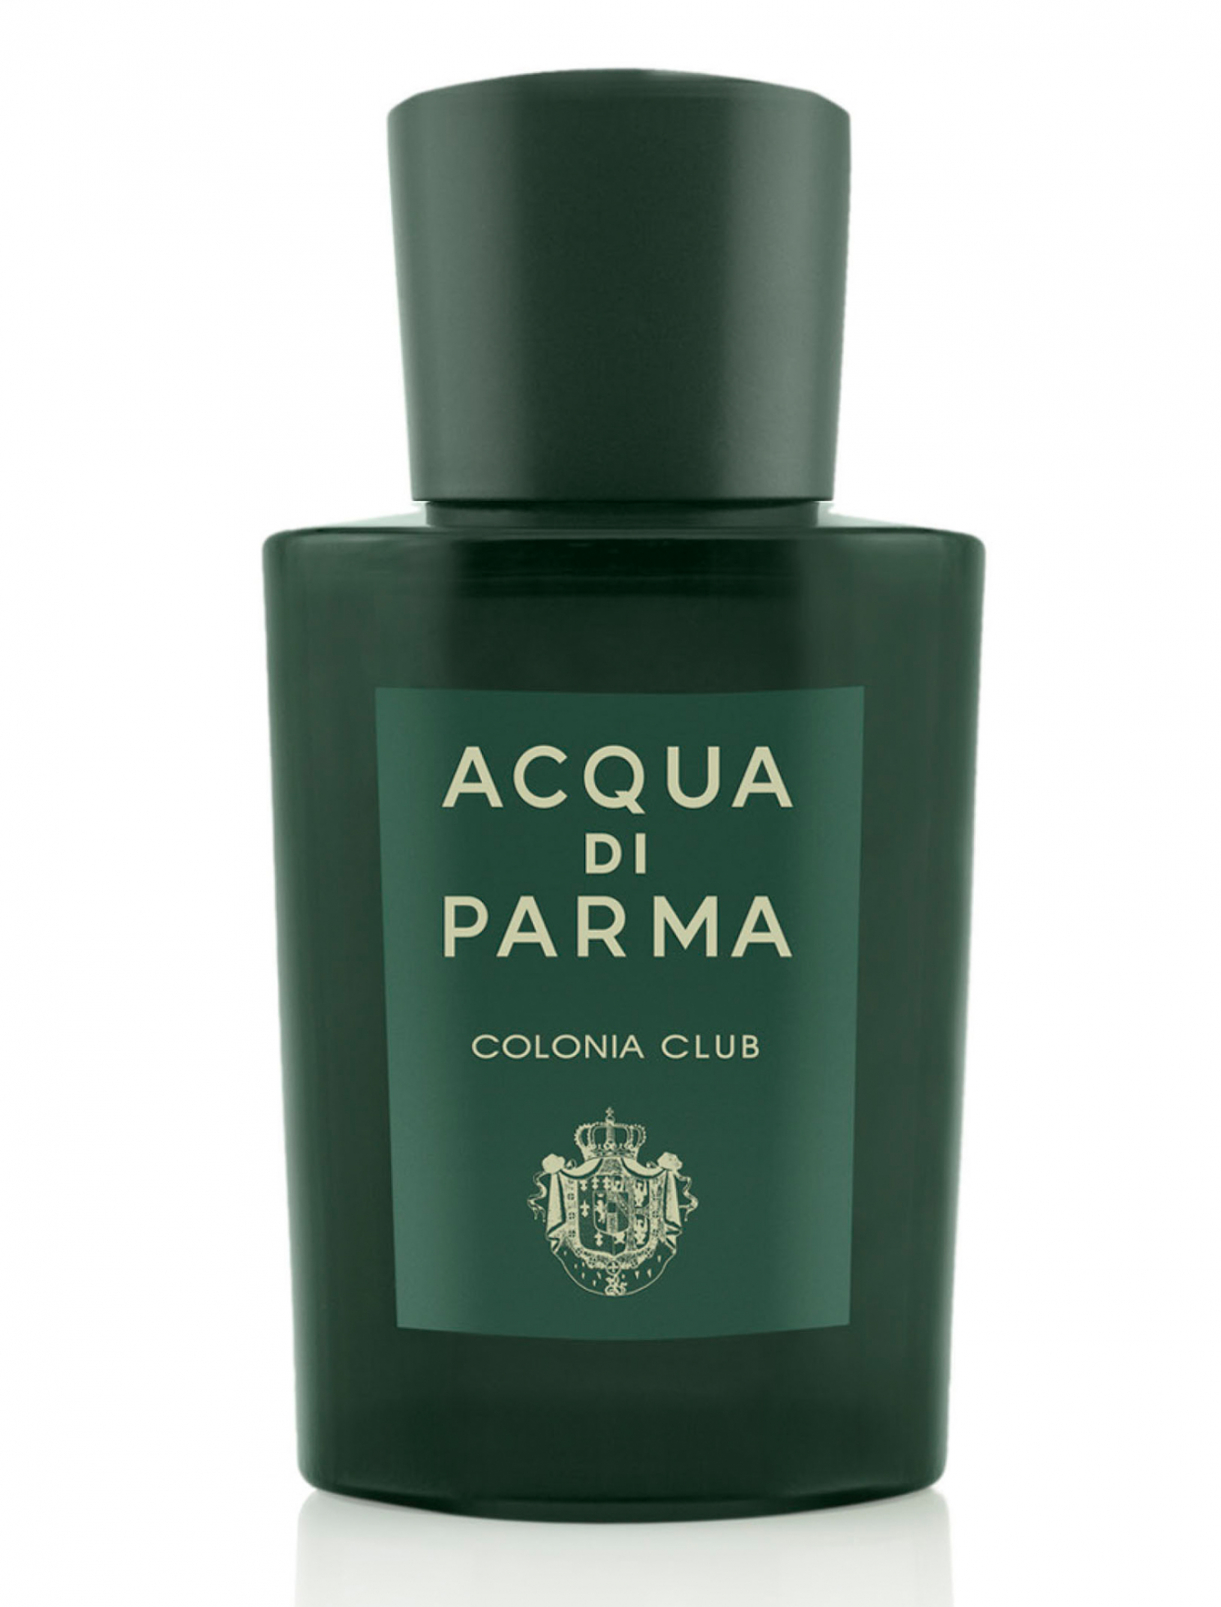 Одеколон 20мл Colonia Club Acqua di Parma  –  Общий вид